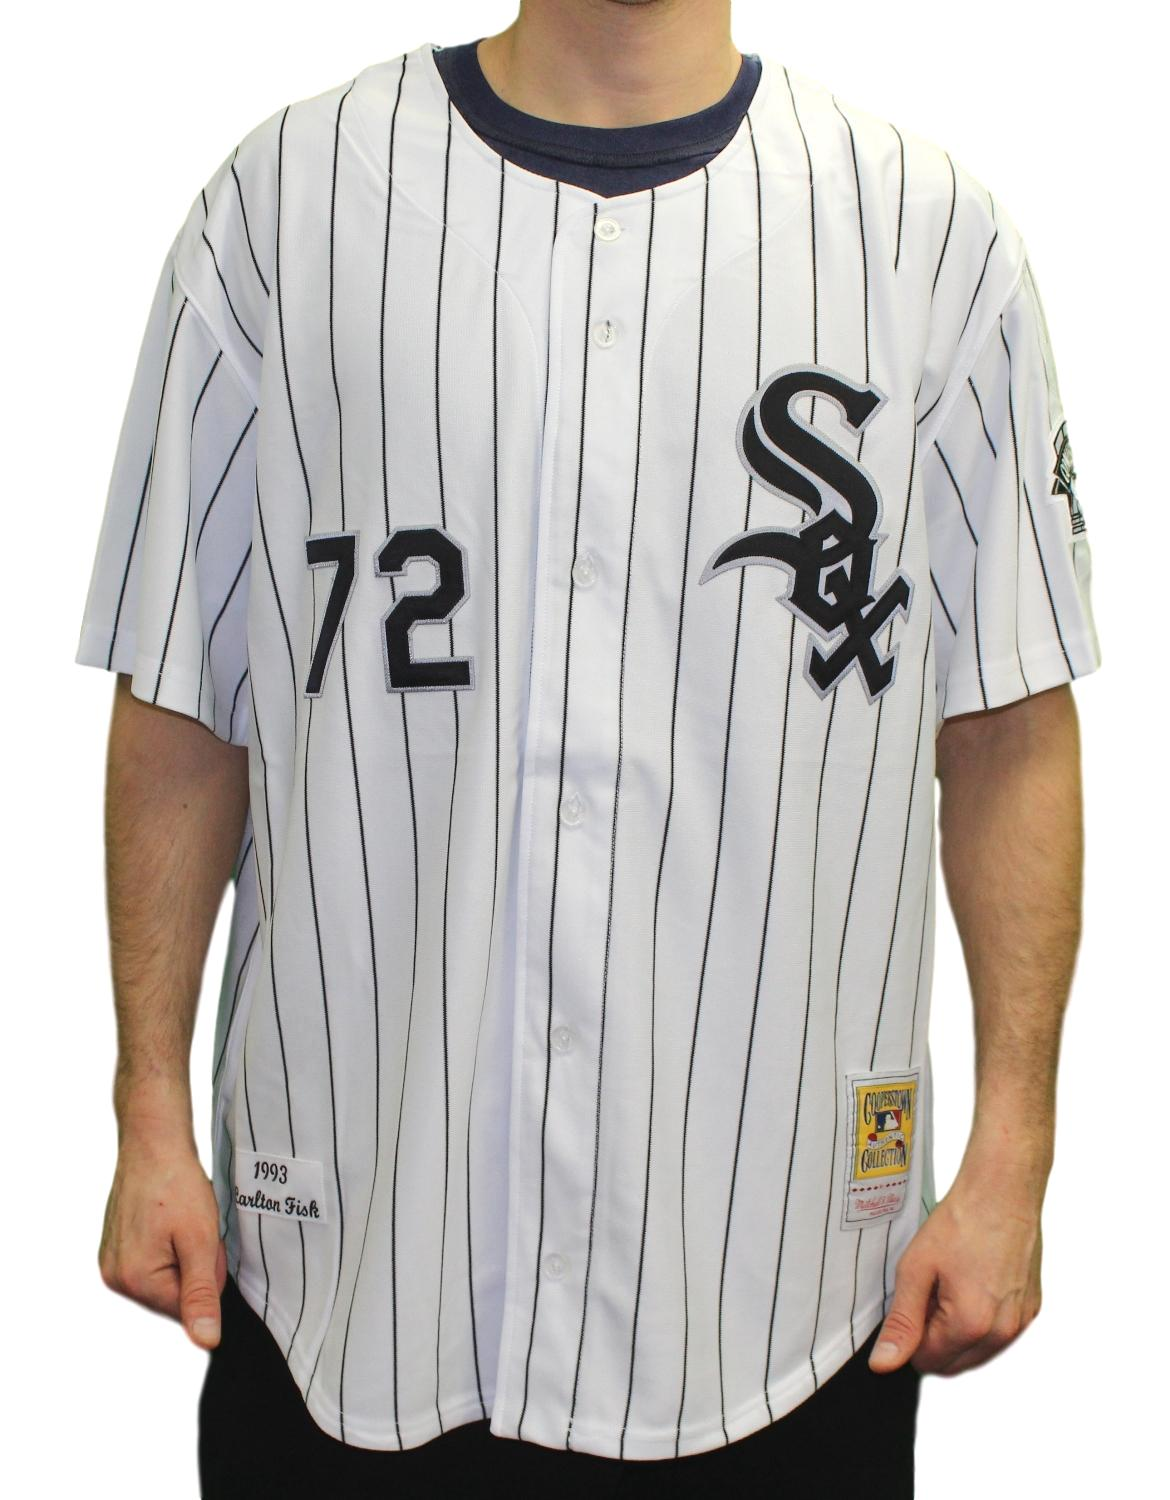 premium selection d38f8 93d41 Details about Carlton Fisk Chicago White Sox Mitchell & Ness MLB Authentic  1993 Jersey